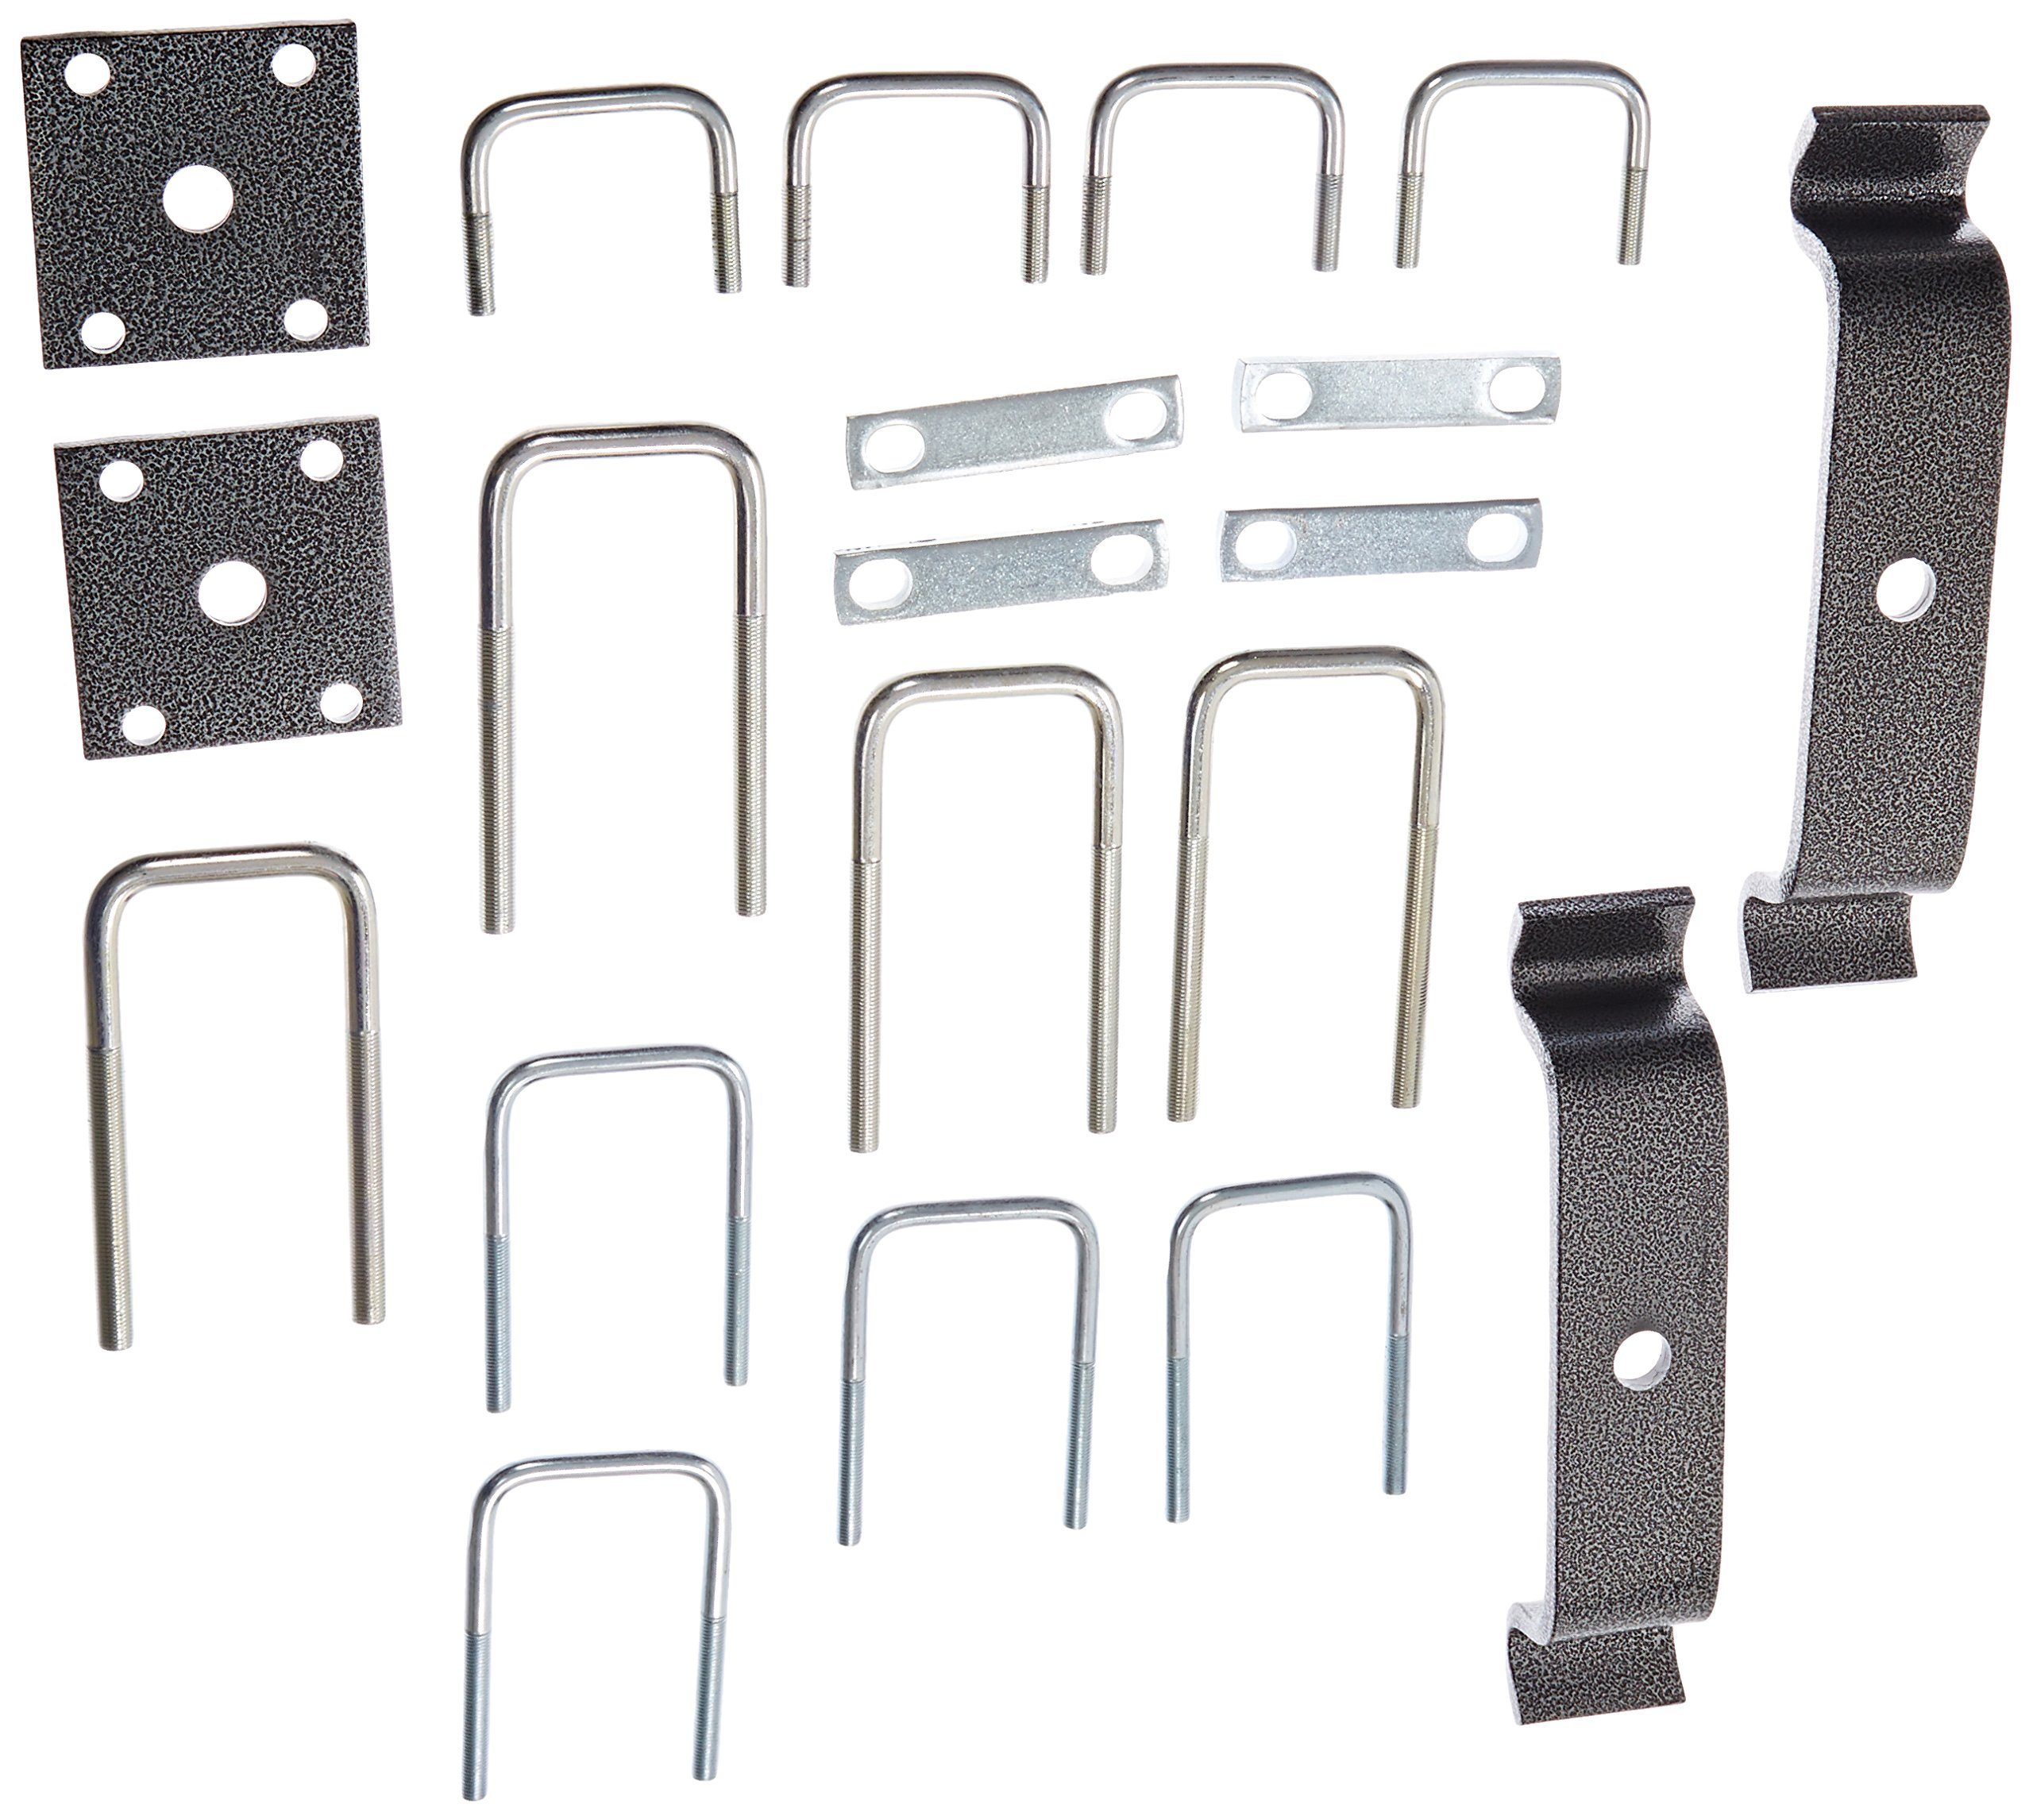 Hellwig 25250 LP-25 Mounting Hardware Kit by Hellwig